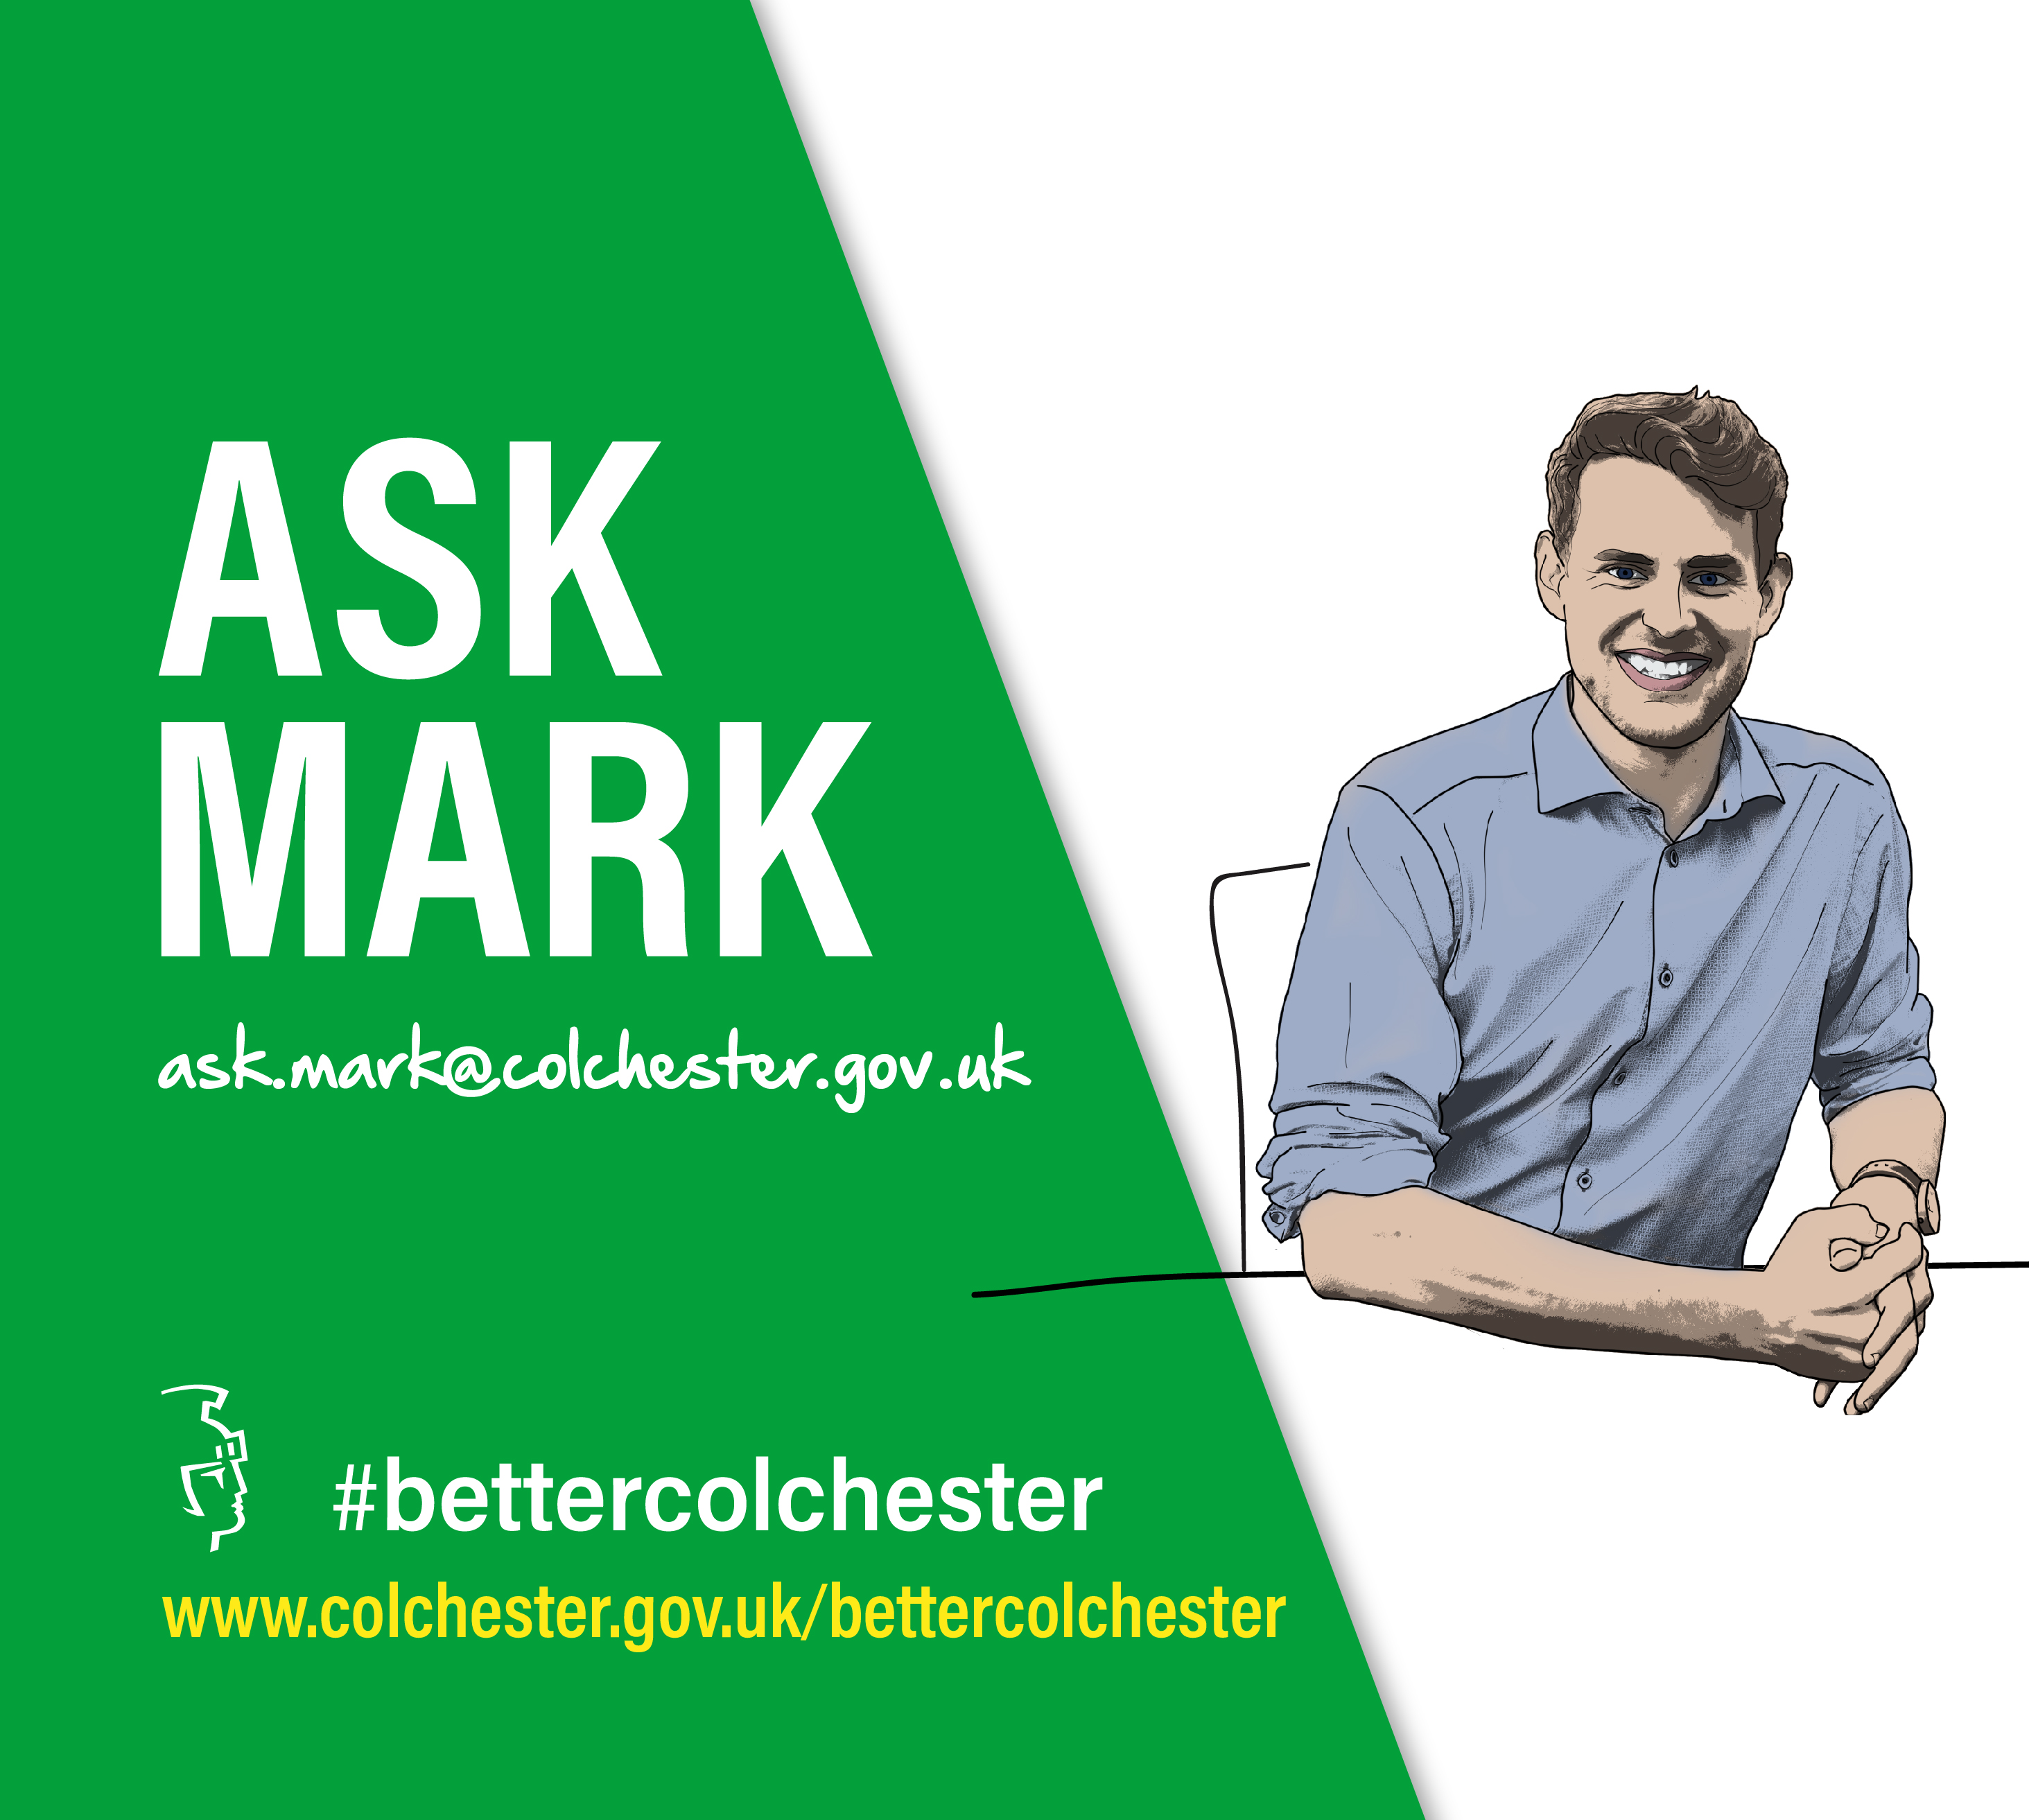 Ask Cllr Mark Cory, Leader of the Council a question. Email ask.mark@colchester.gov.uk